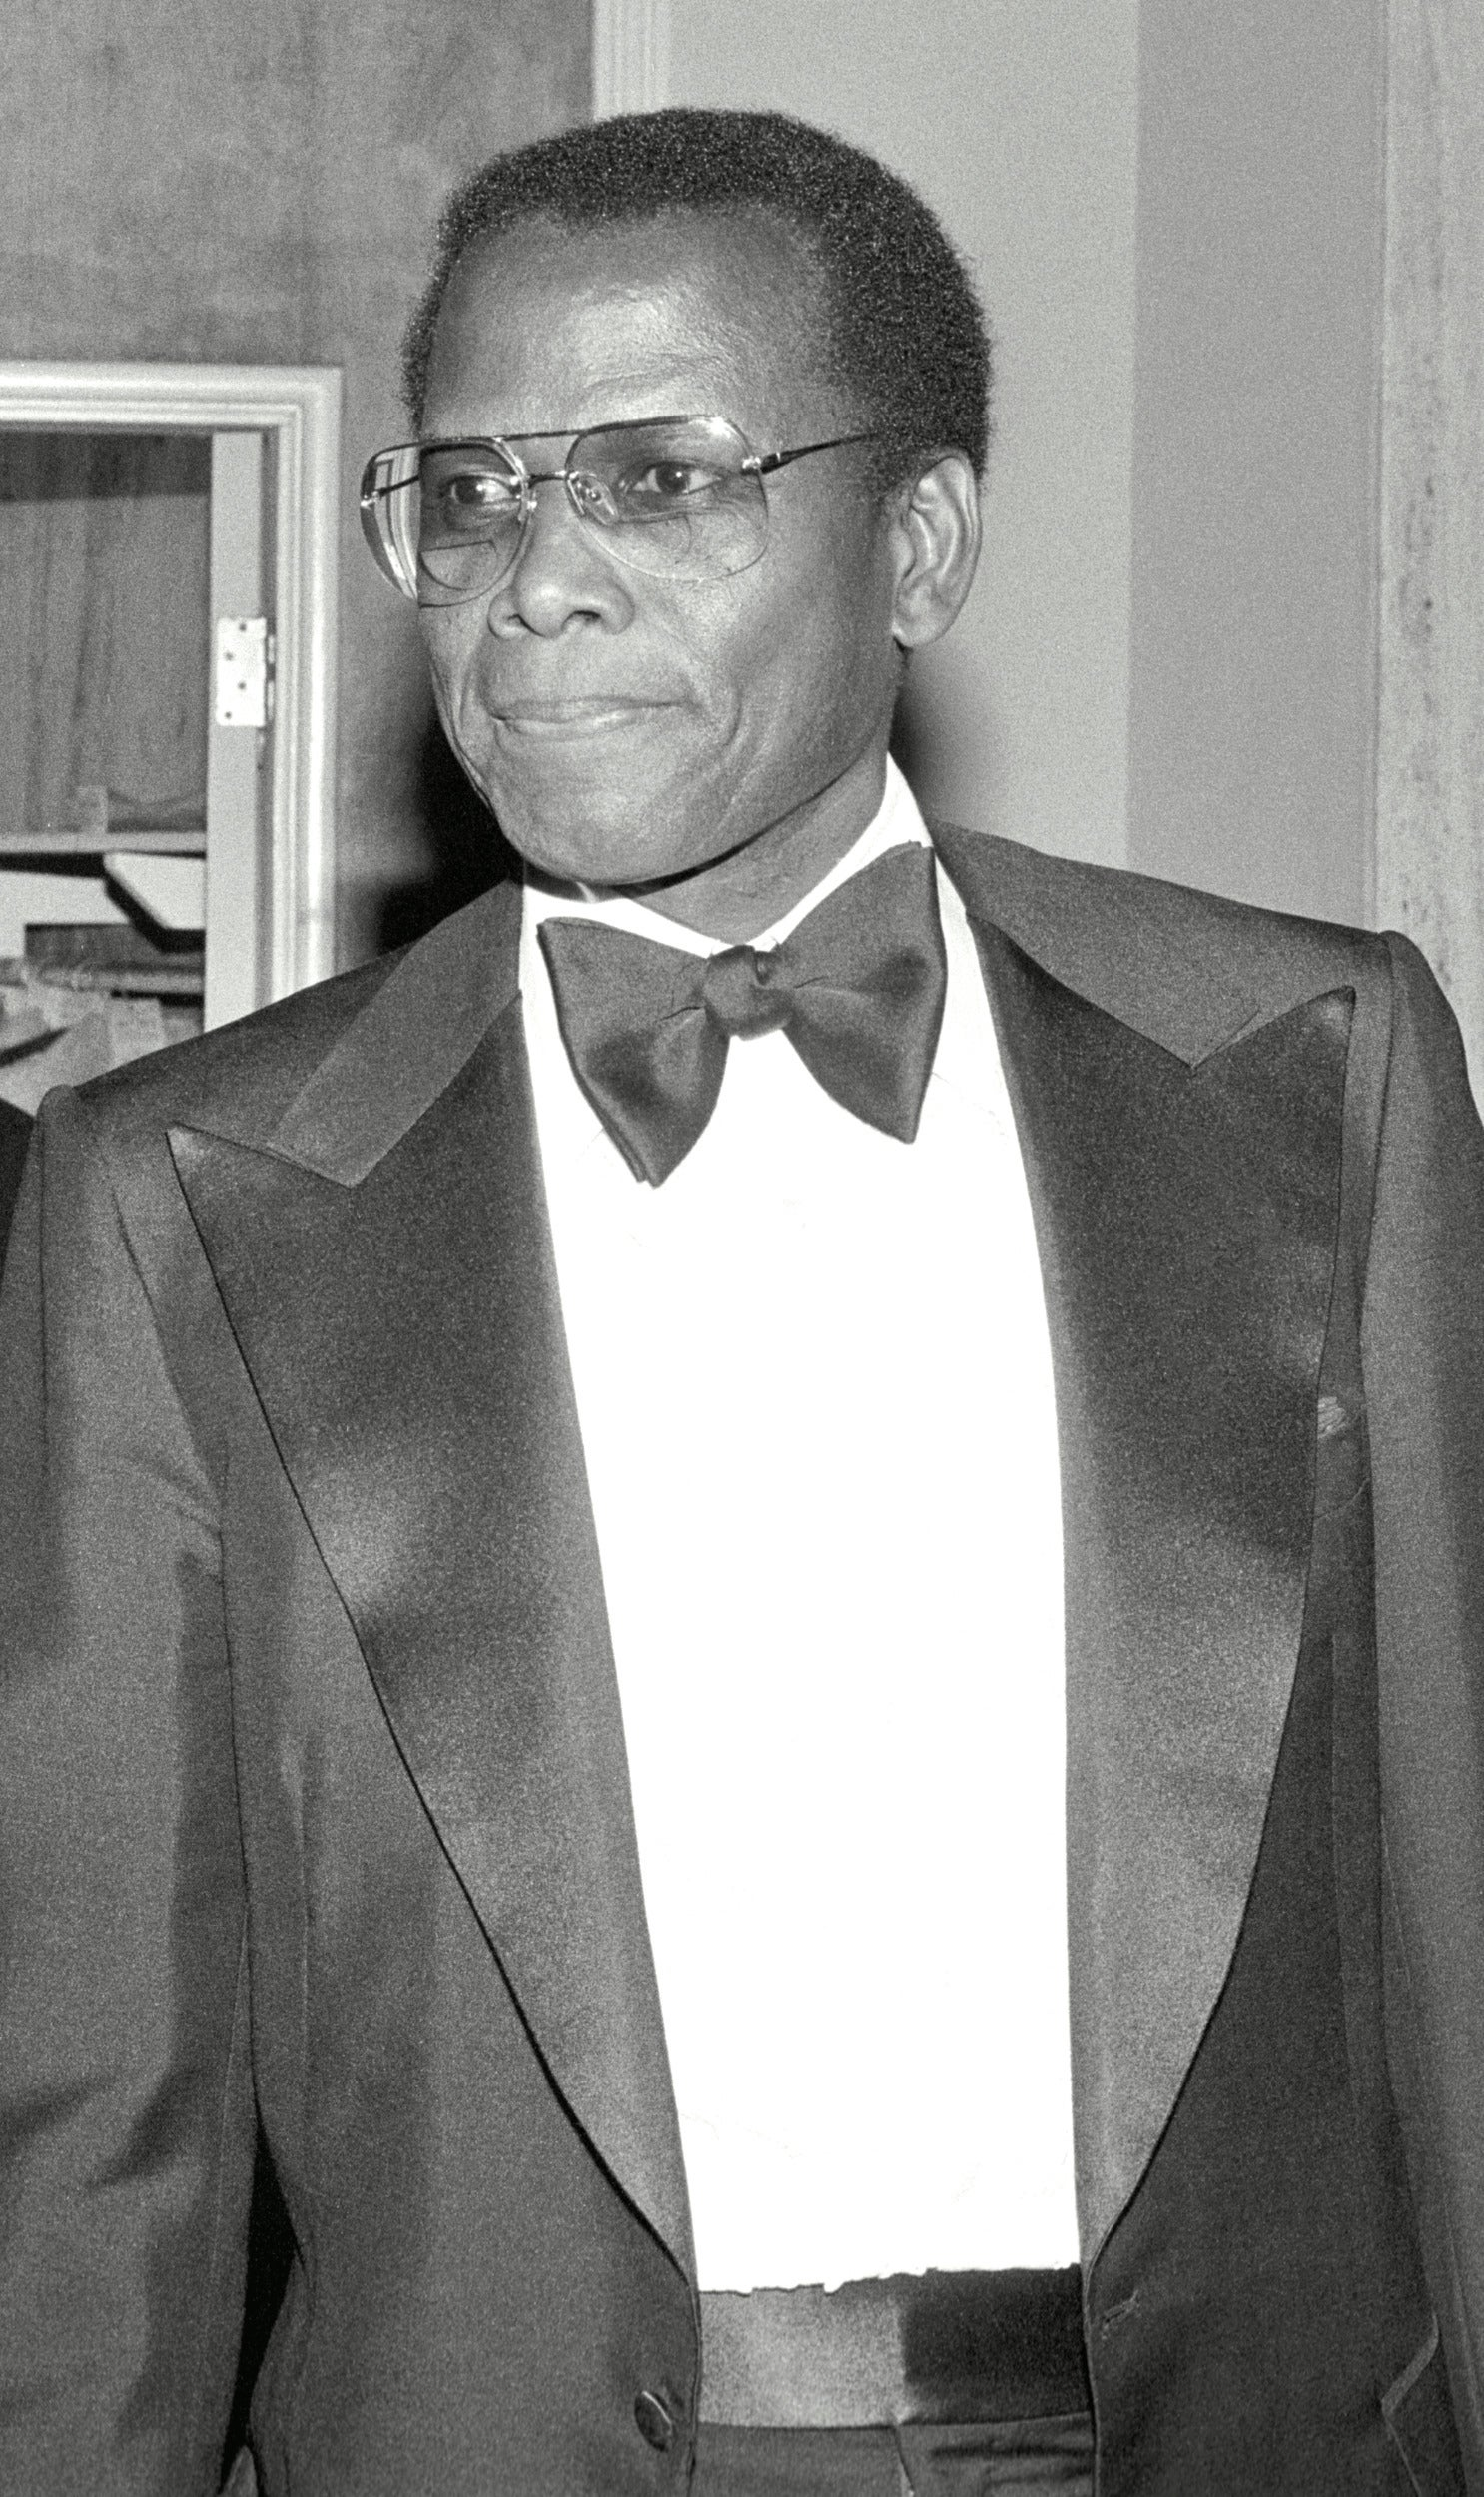 Actor and producer Sidney Poitier, Golden Globe winner and Cecil B. deMille award recipient